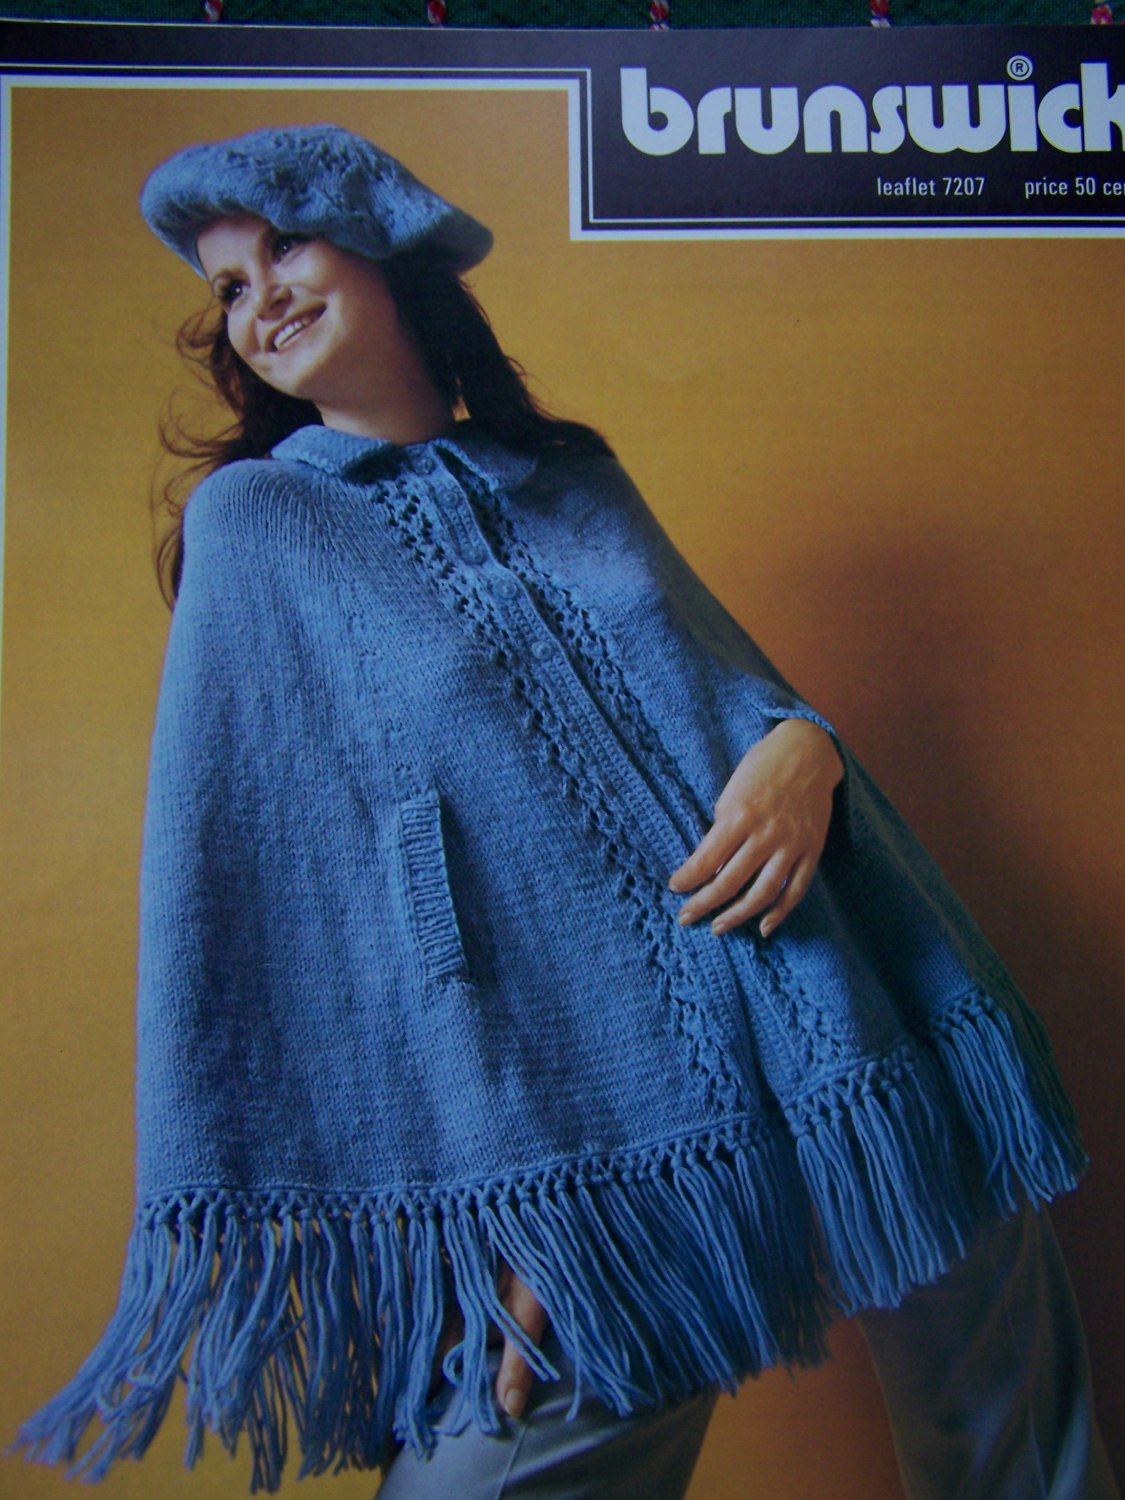 Vintage Ladies Brunswick Knitting & Crochet Capes & Beret Hats Patterns 7207 Maxi Instructions